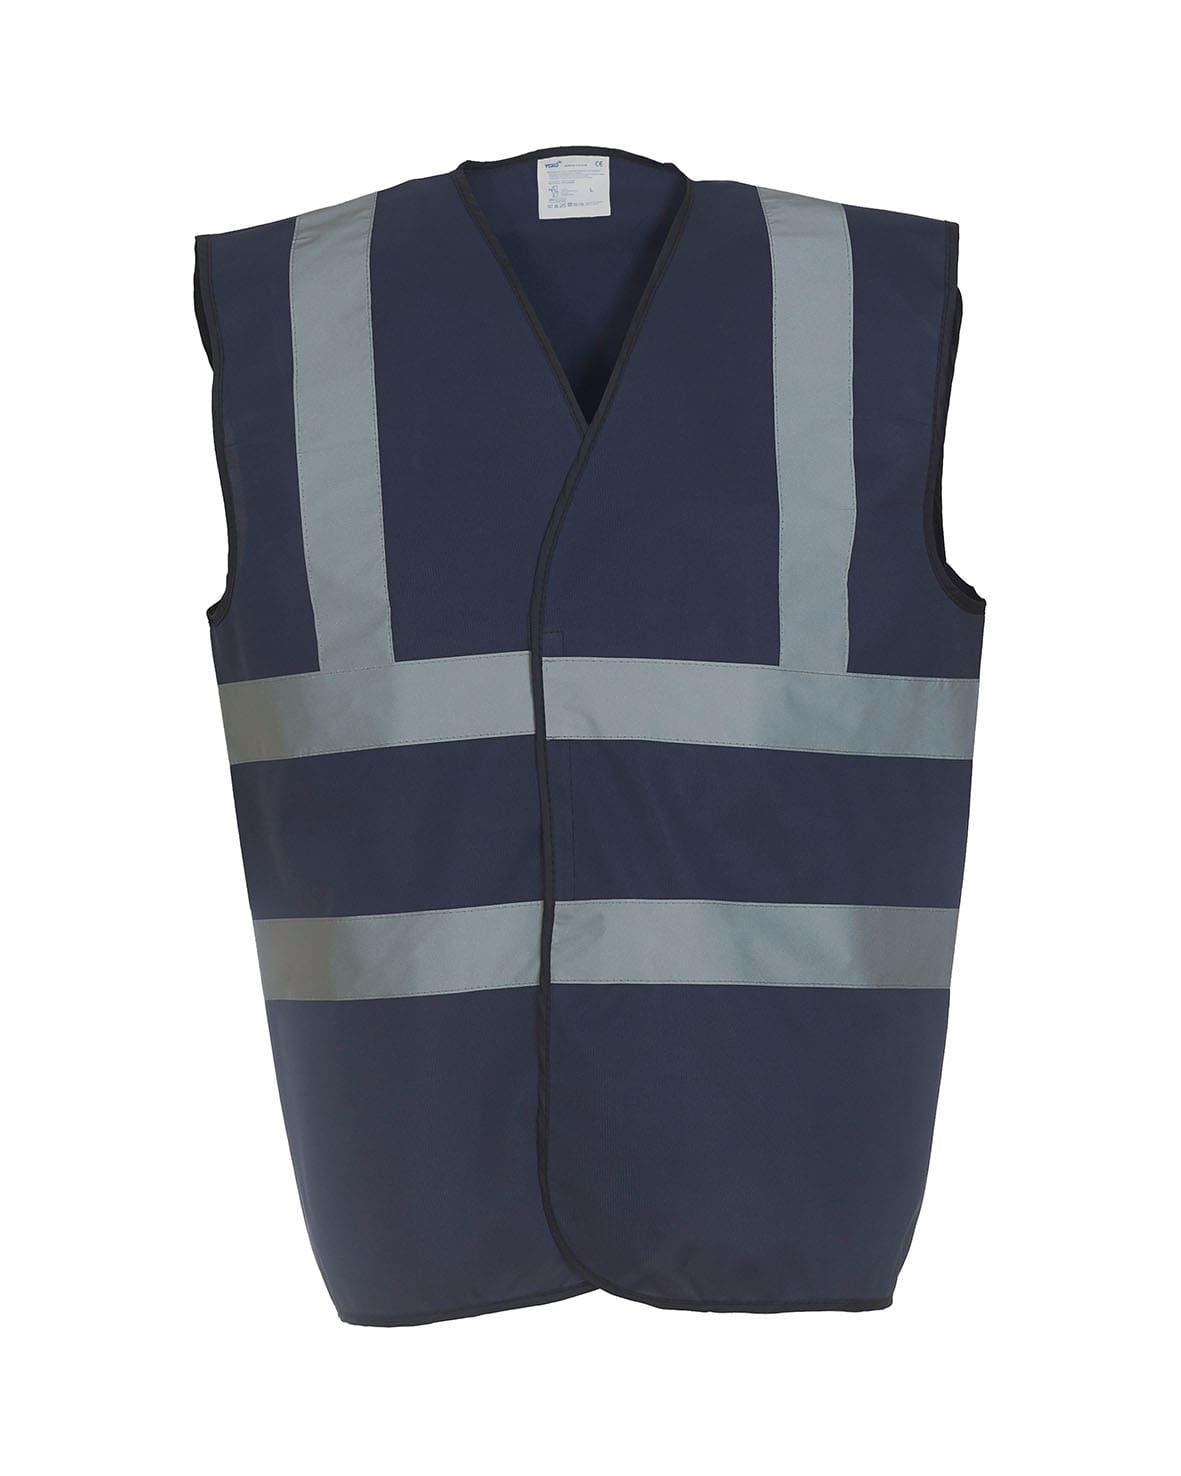 A complete selection of High Visibility Vests and Coatlets that can be Embroidered or Printed with Your Design or Logo